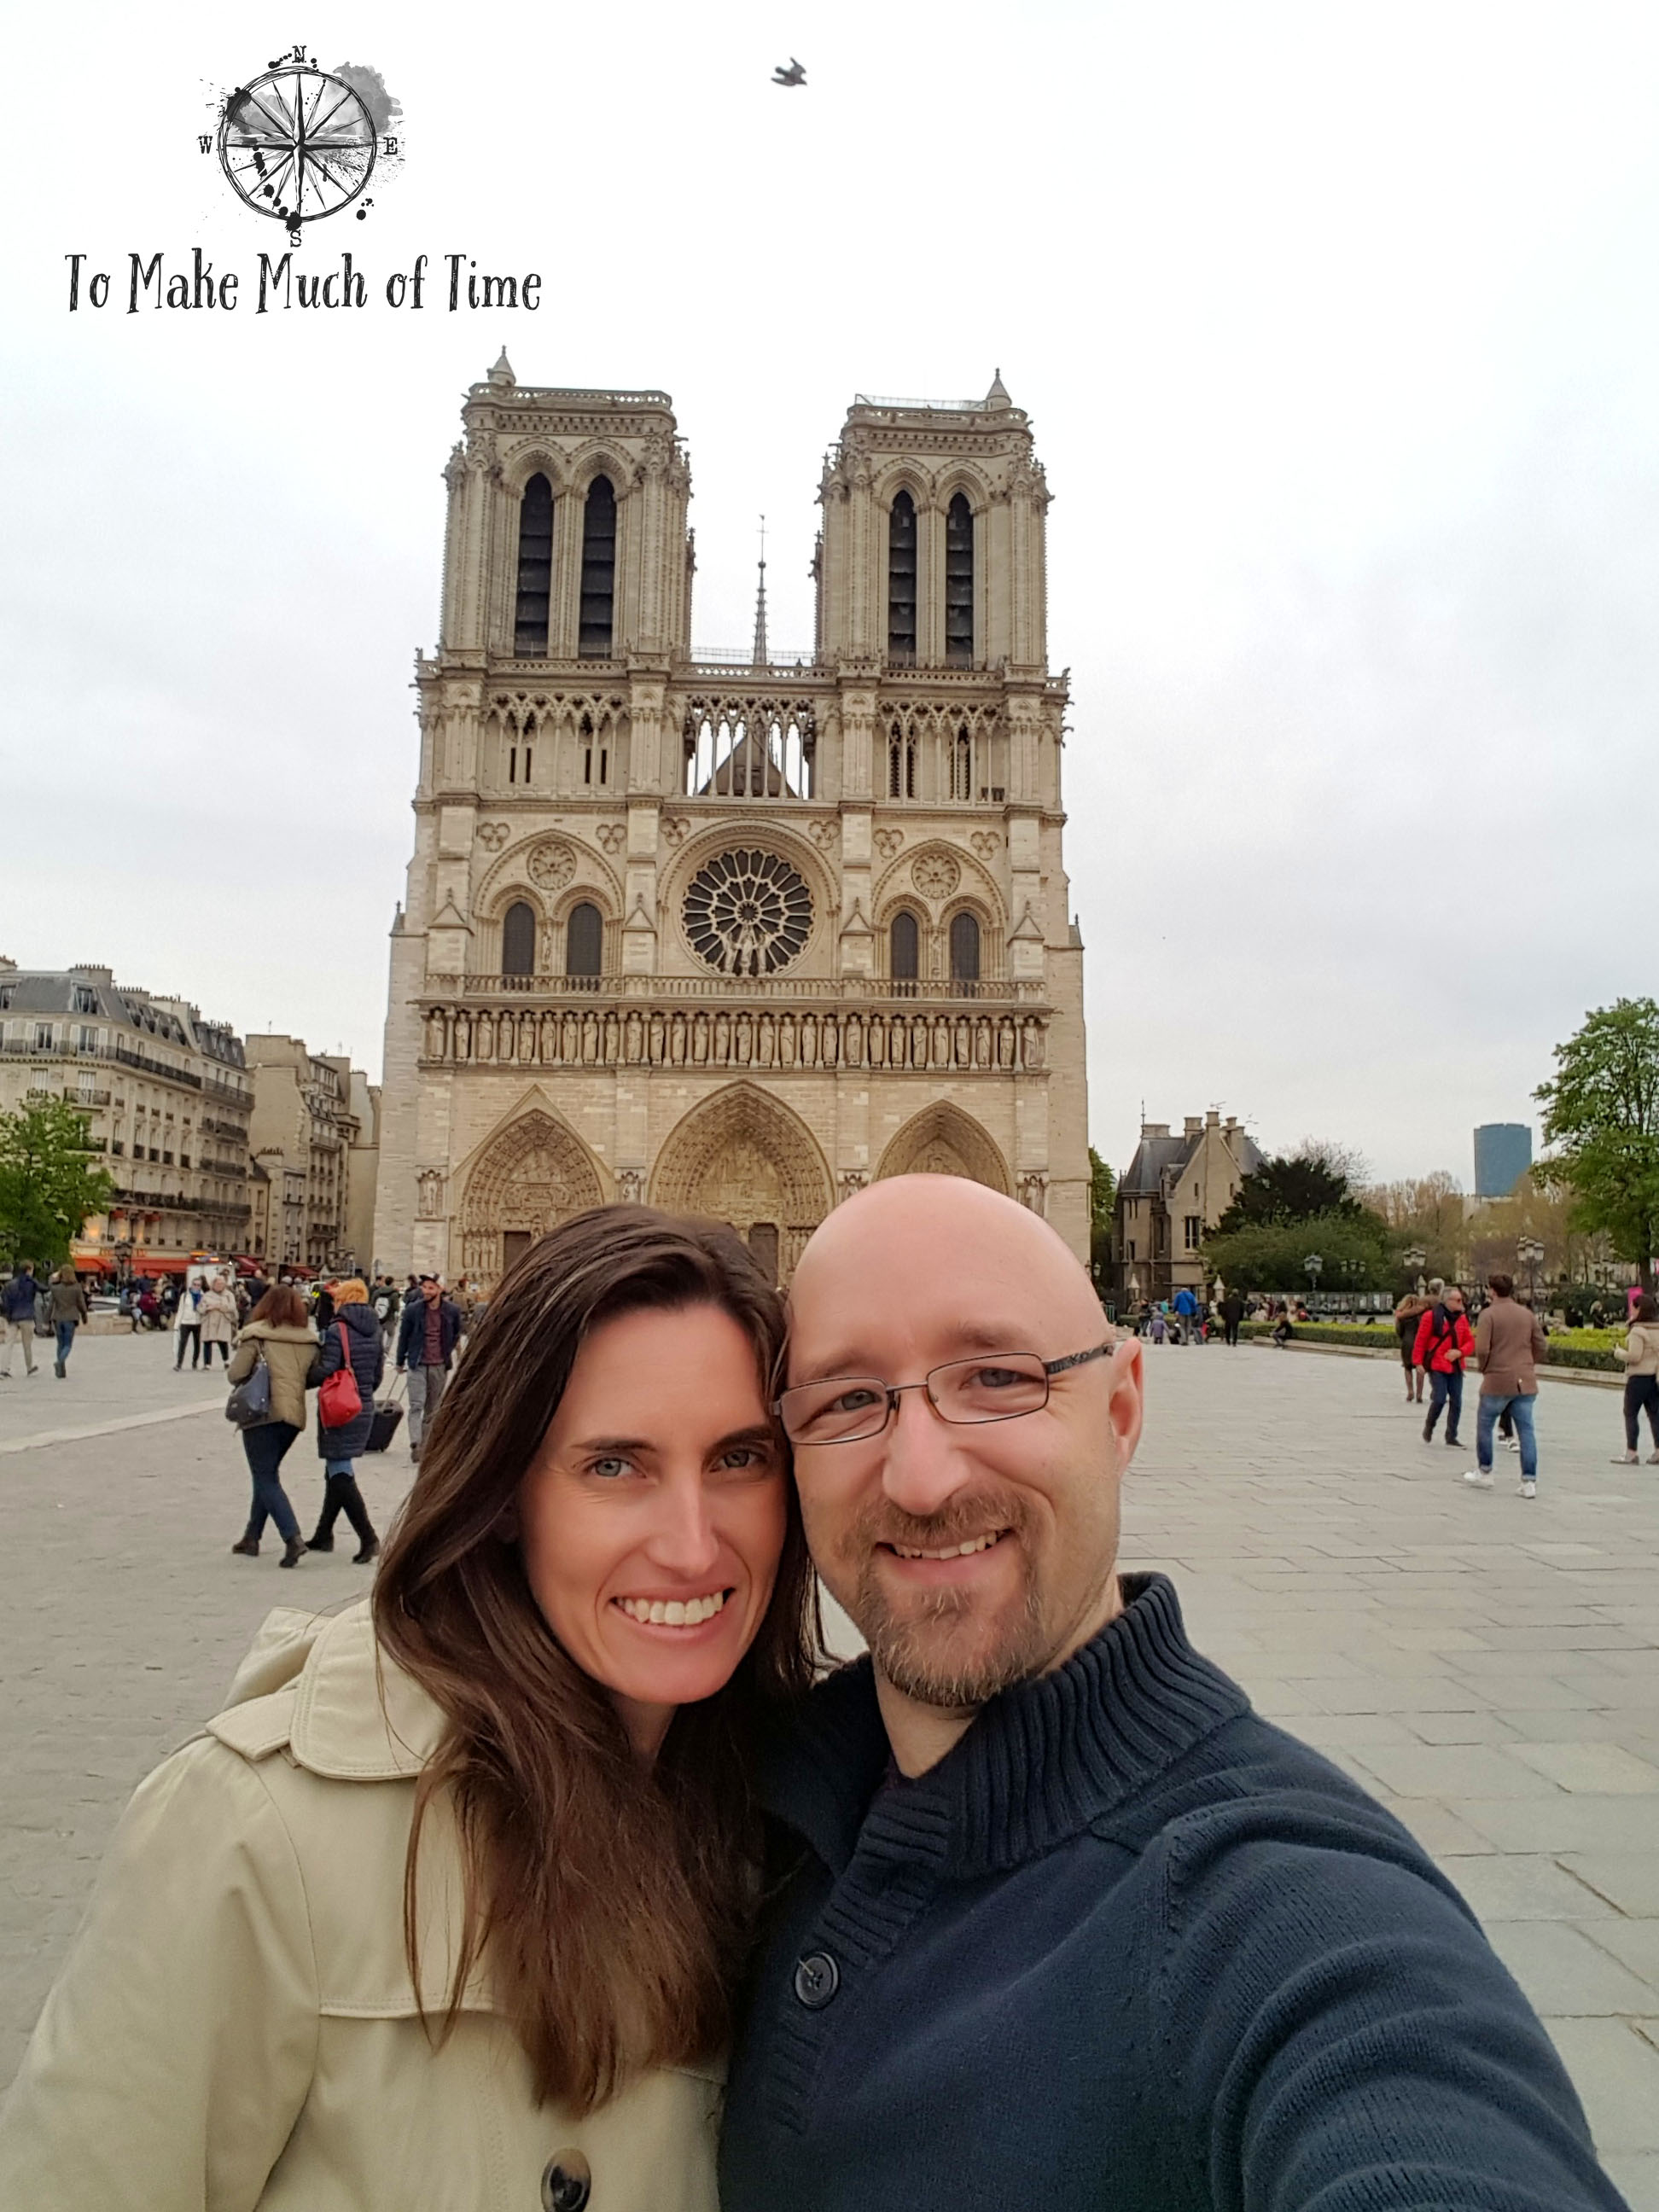 When you are standing in front of Notre-Dame you are obligated to take a selfie!